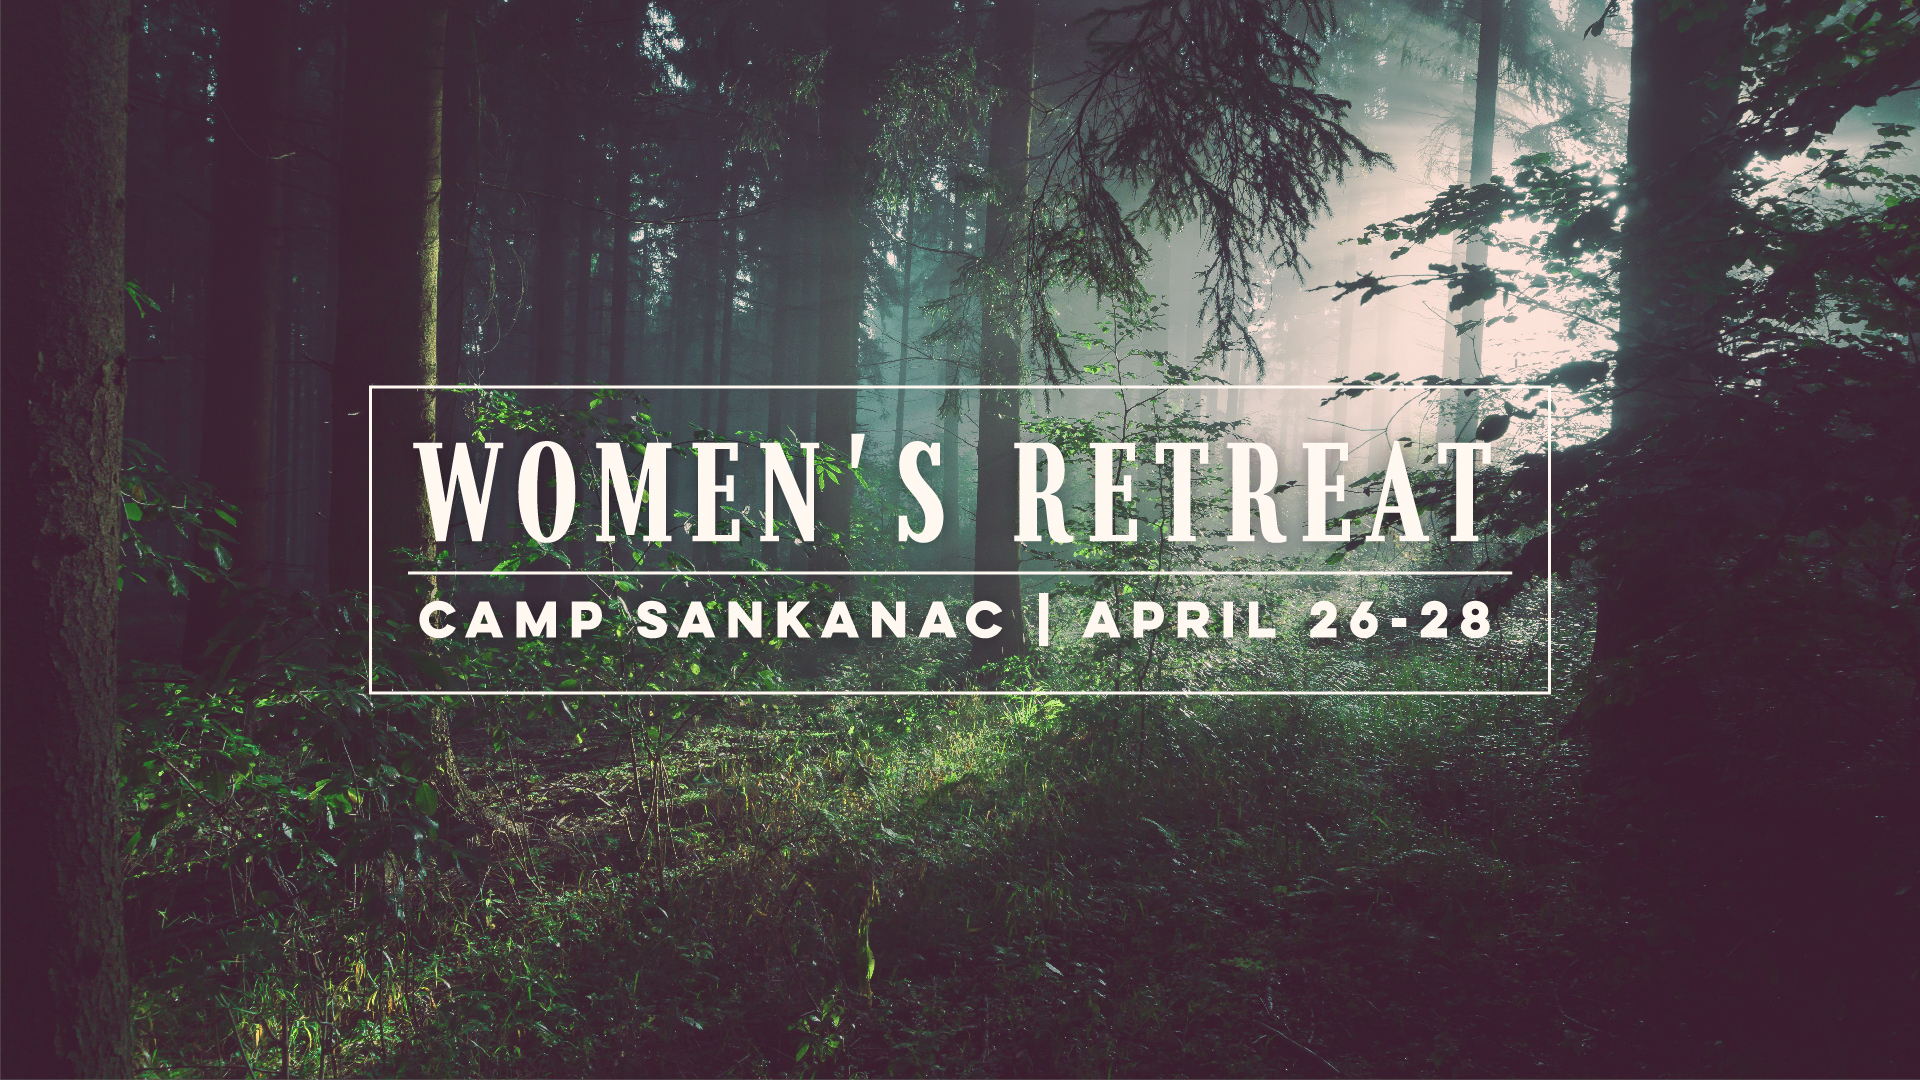 Women's Retreat 2019_option2.jpg